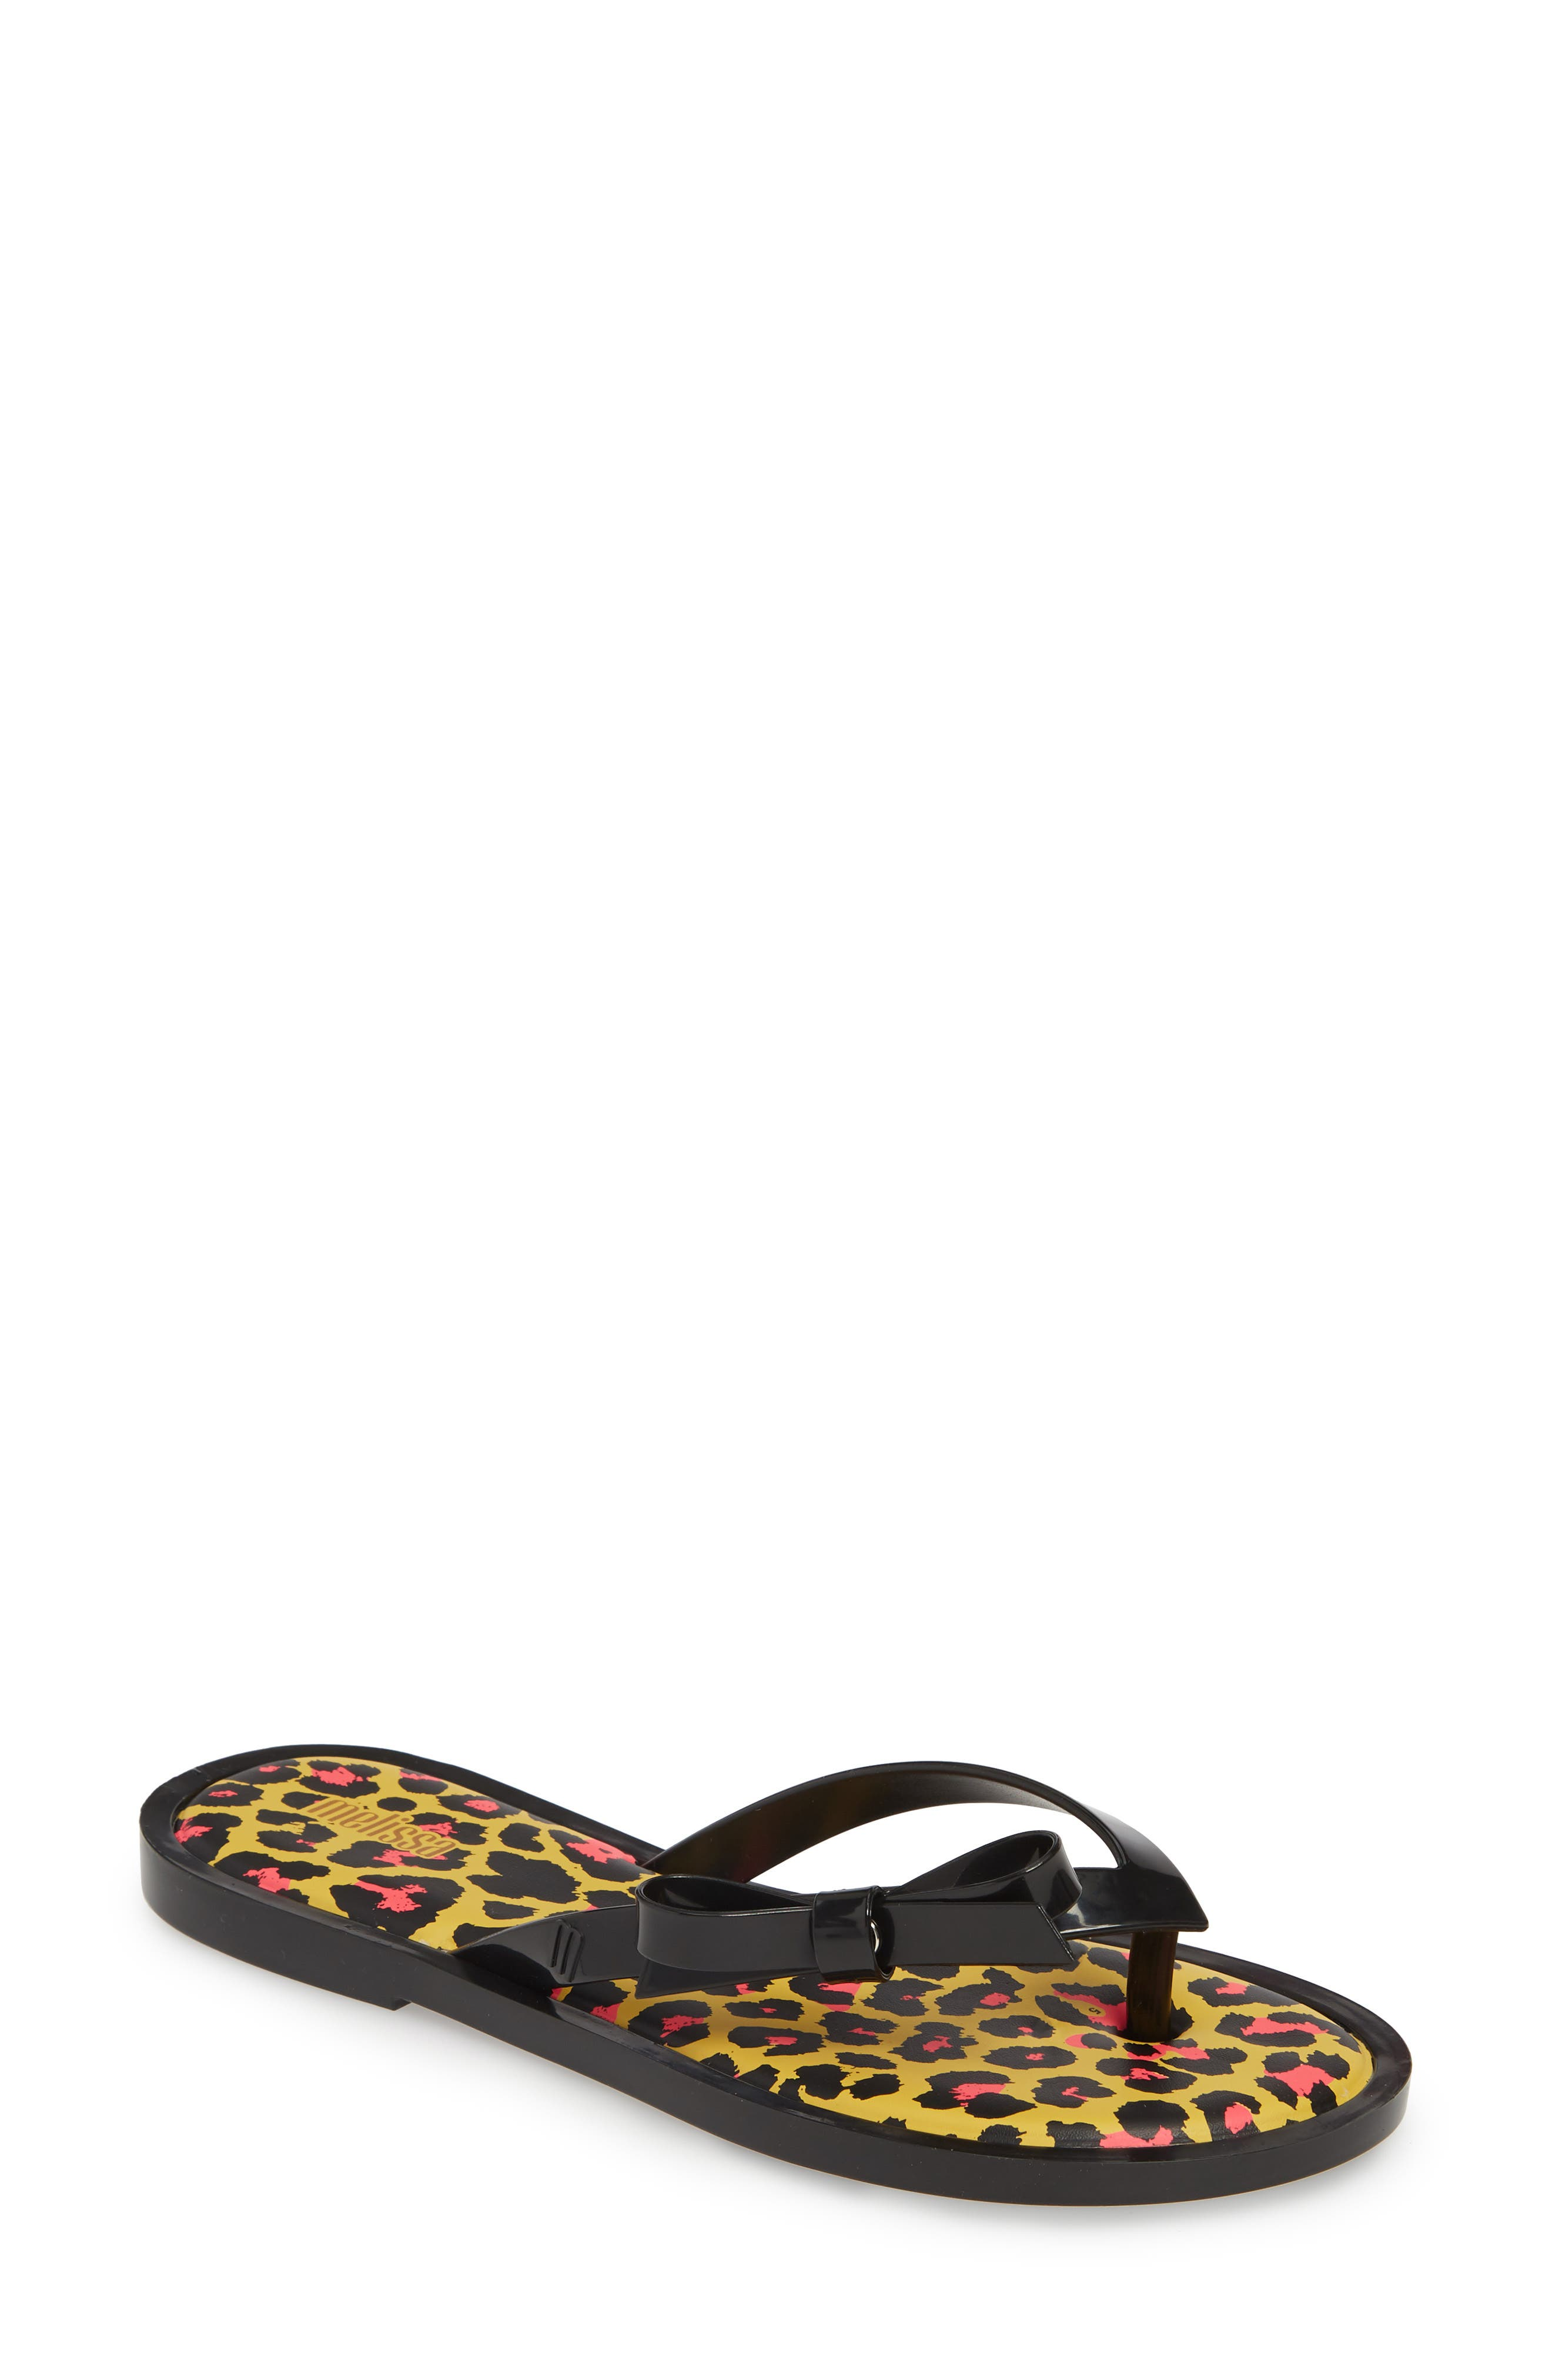 99dd67736 Melissa Flip-Flops   Sandals for Women